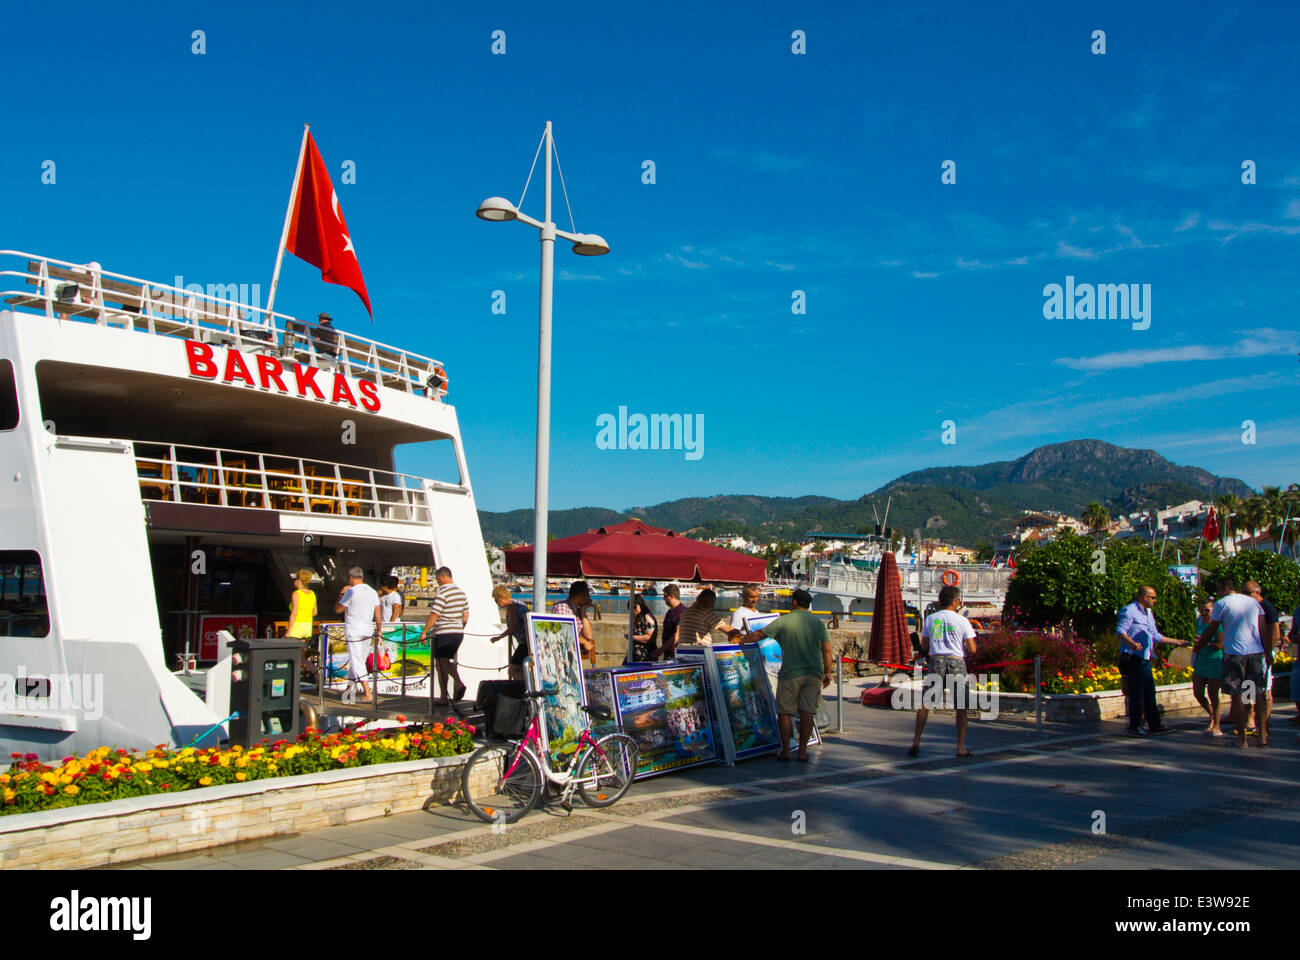 People getting on cruise boat in the morning, Kordon street, the harbour, Marmaris, Mugla province, Turkey, Asia - Stock Image